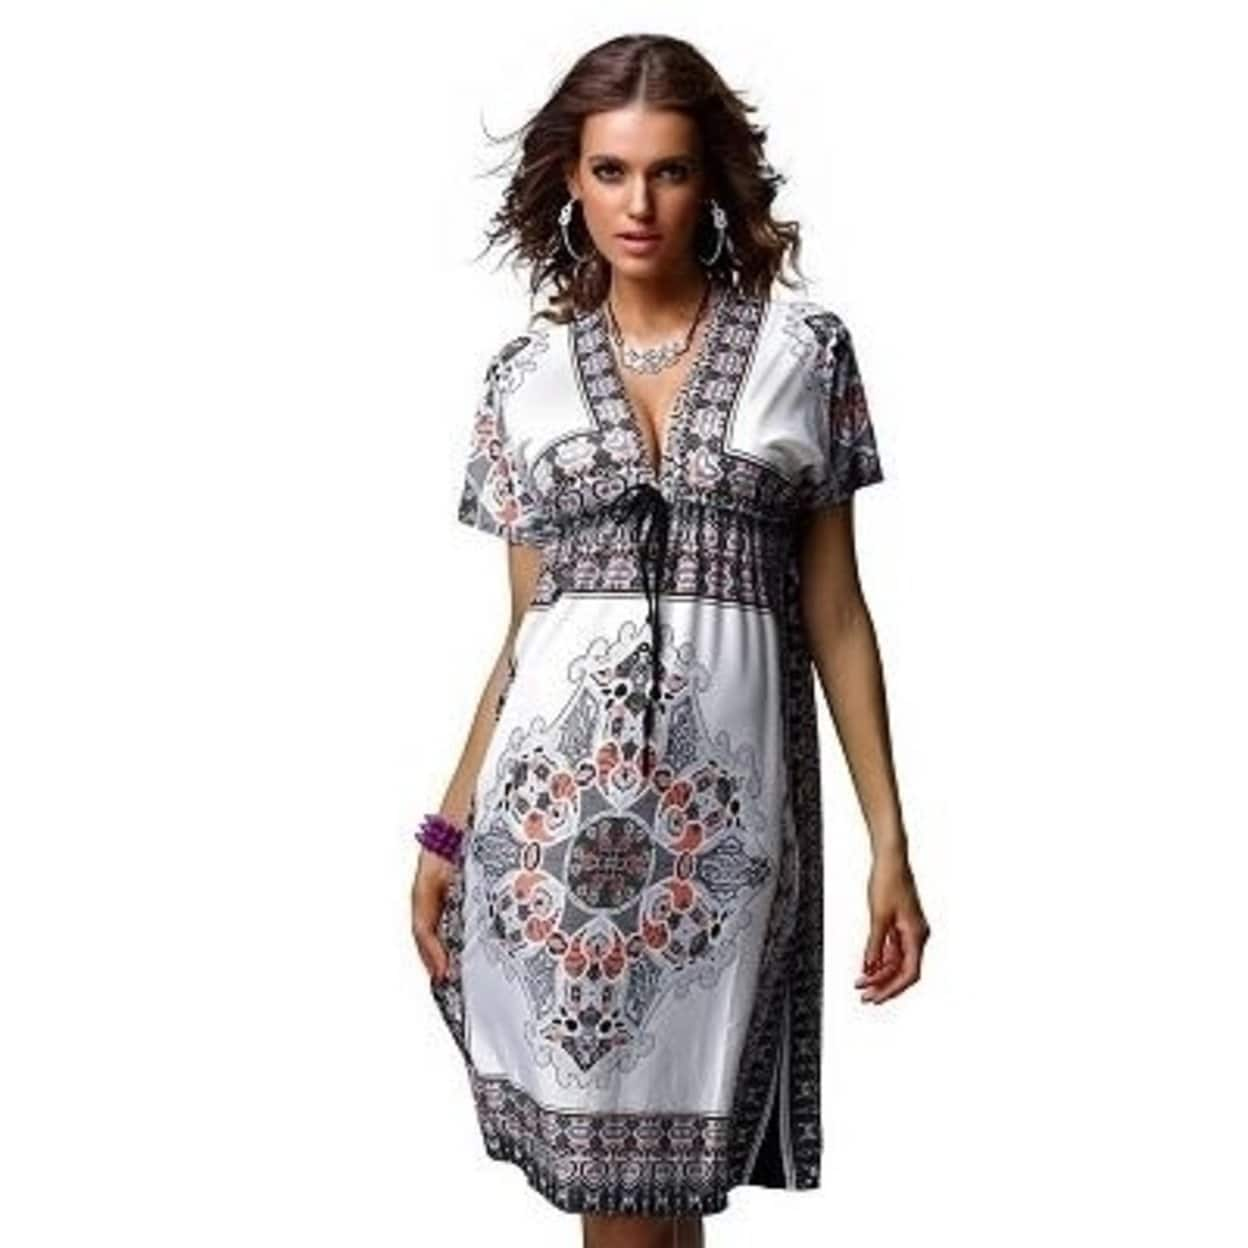 2fcebad707 2018 Boho Style Summer Women Dress Hot Sundresses Deep V Floral Print Tunic  Beach Dresses Plus Size Casual Silk Dresses